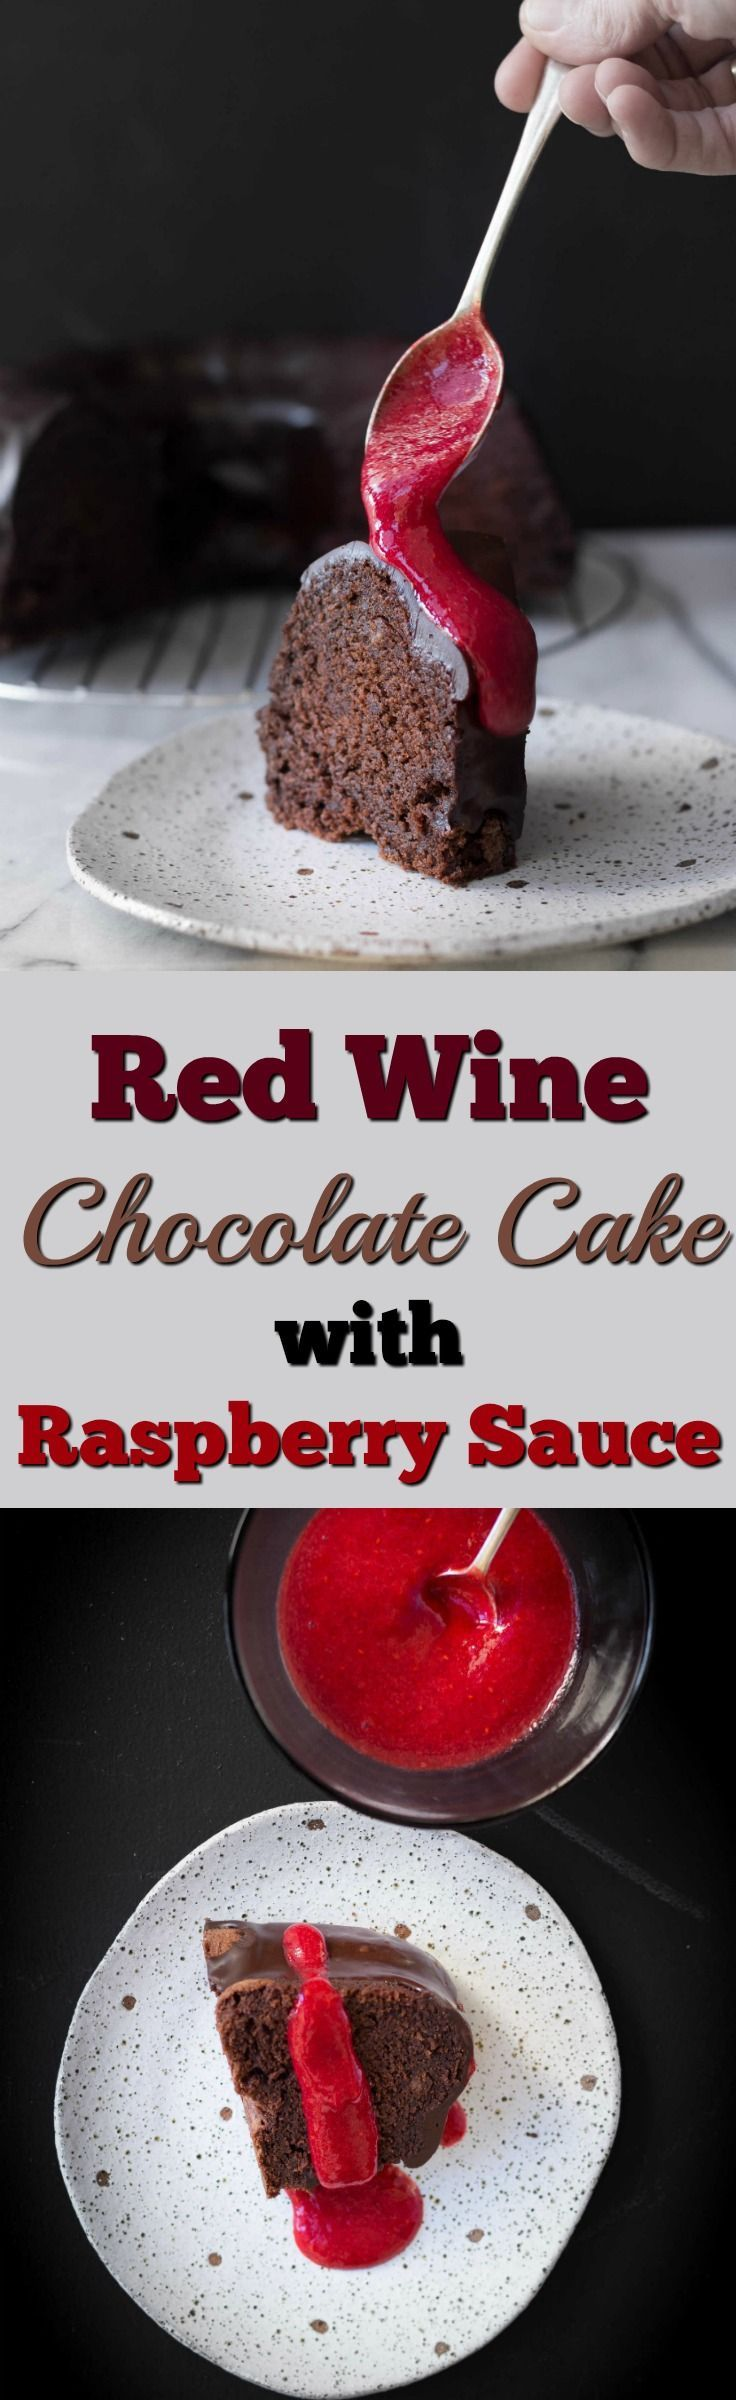 Red Wine Chocolate Cake with Raspberry Sauce